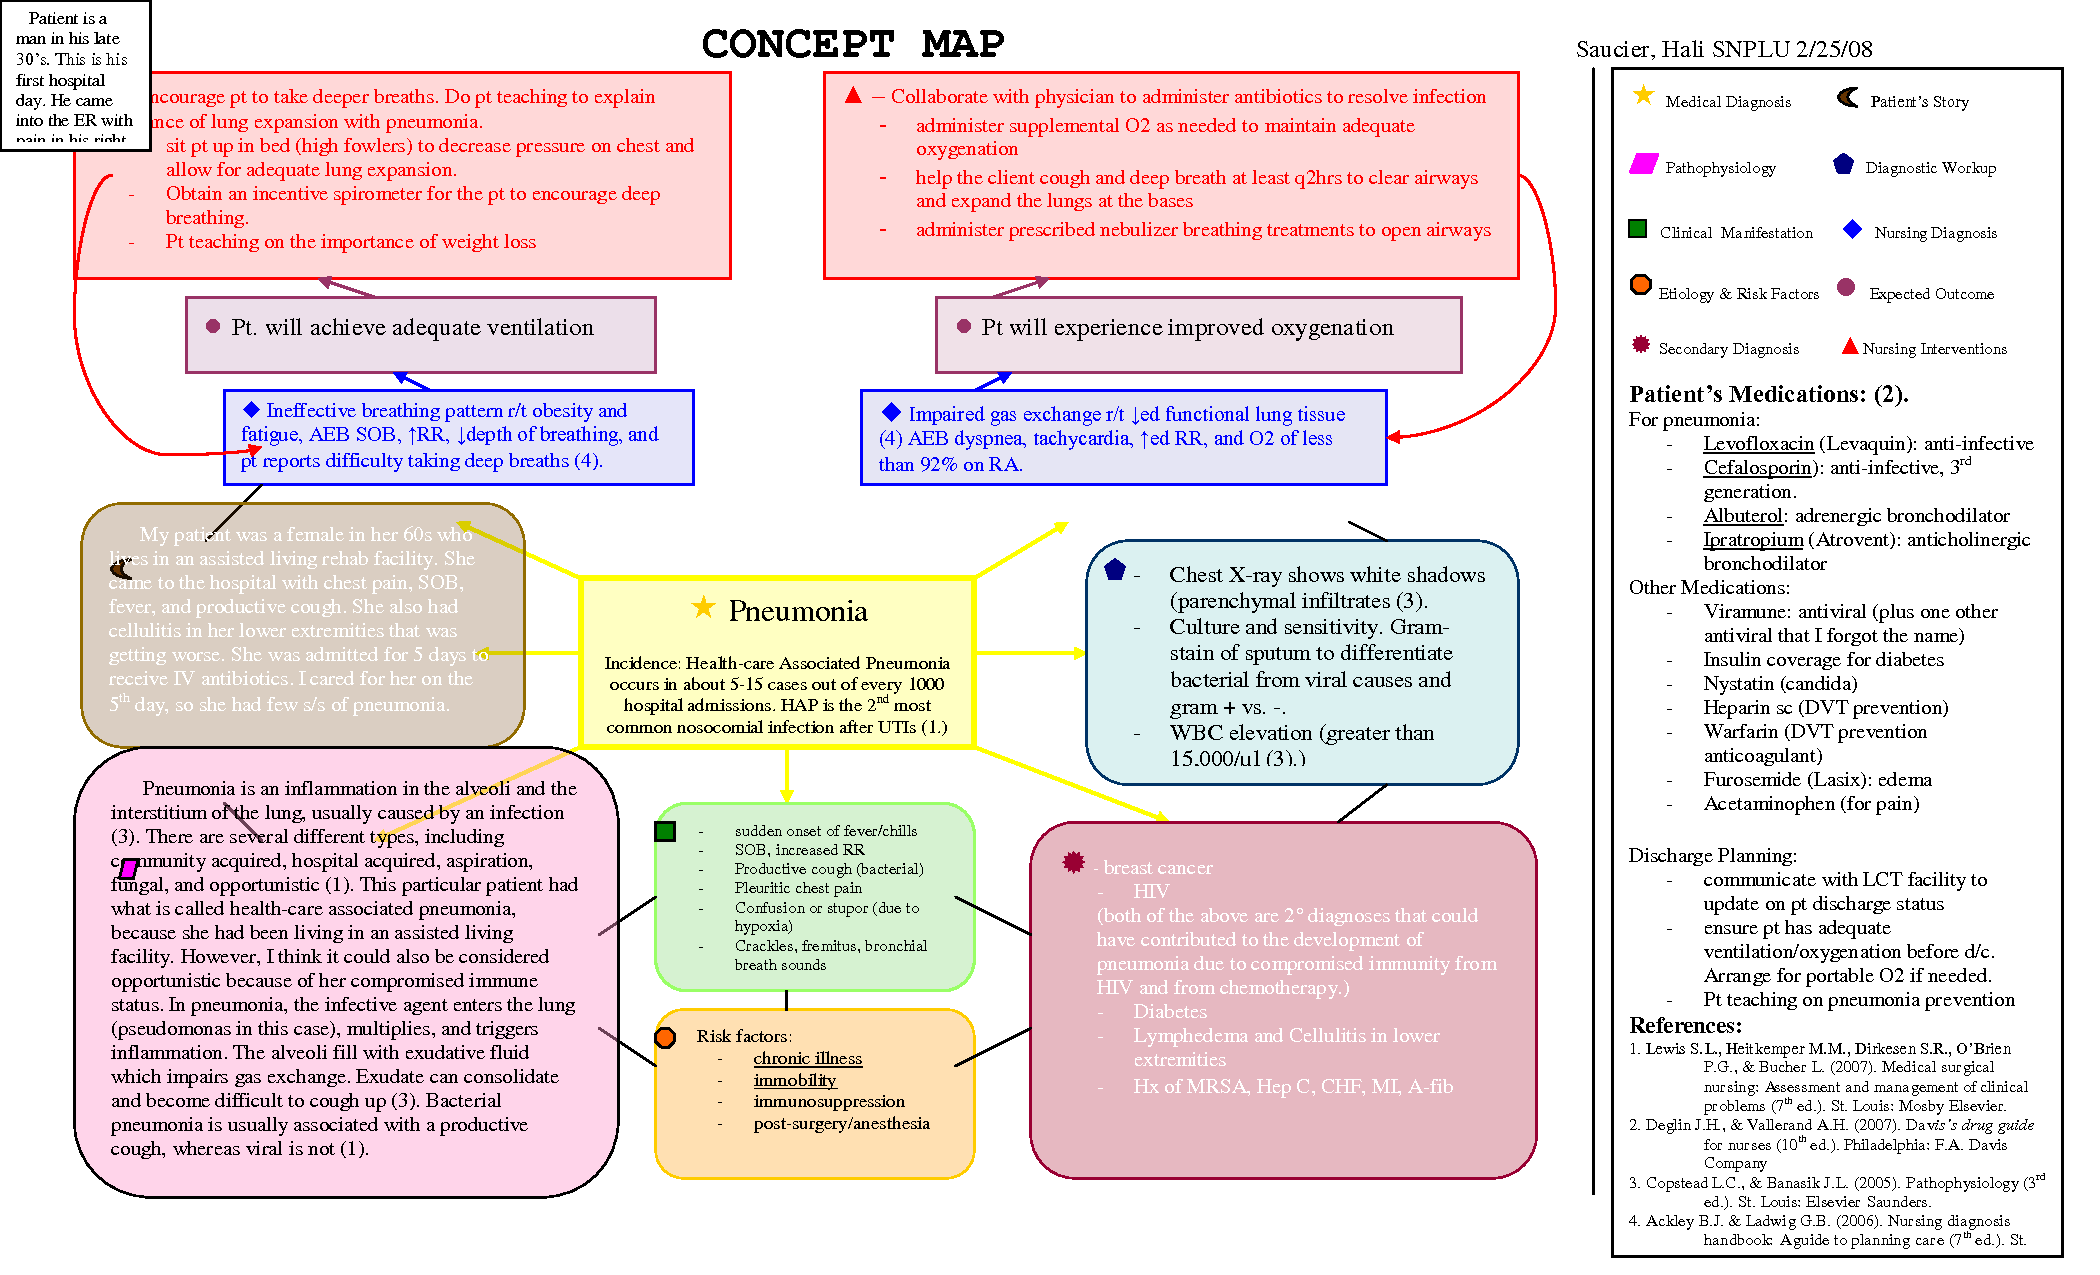 Atrial Fibrillation Concept Map.Nursing Diagnosis Concept Maps Pneumonia Concept Map Plu Pacific